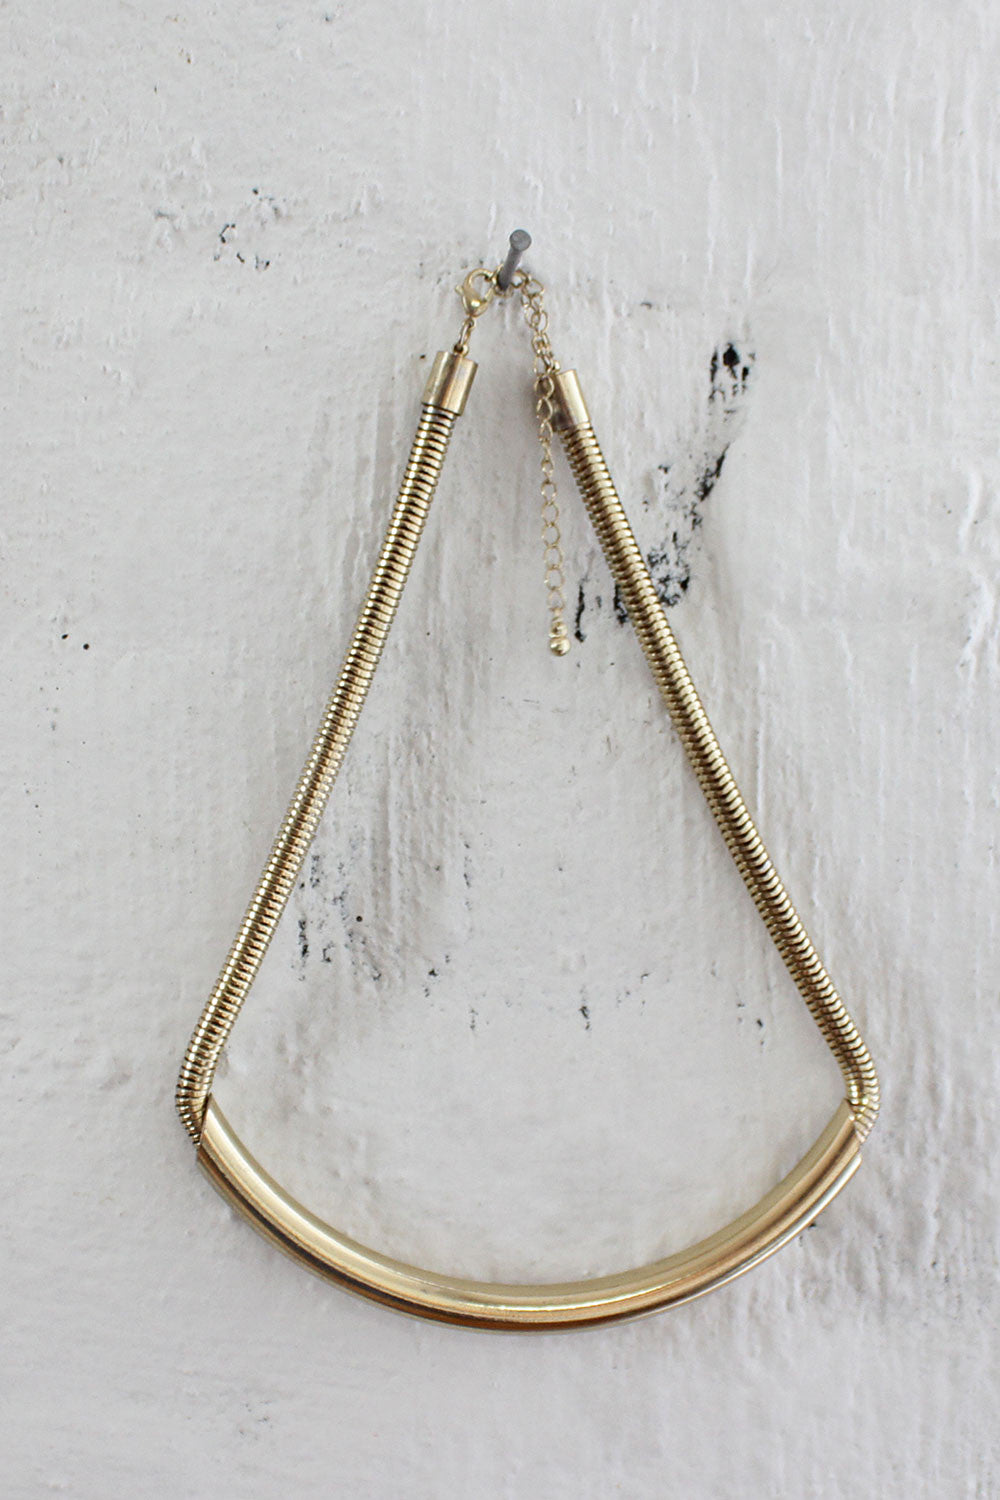 Collaborate Coil Necklace